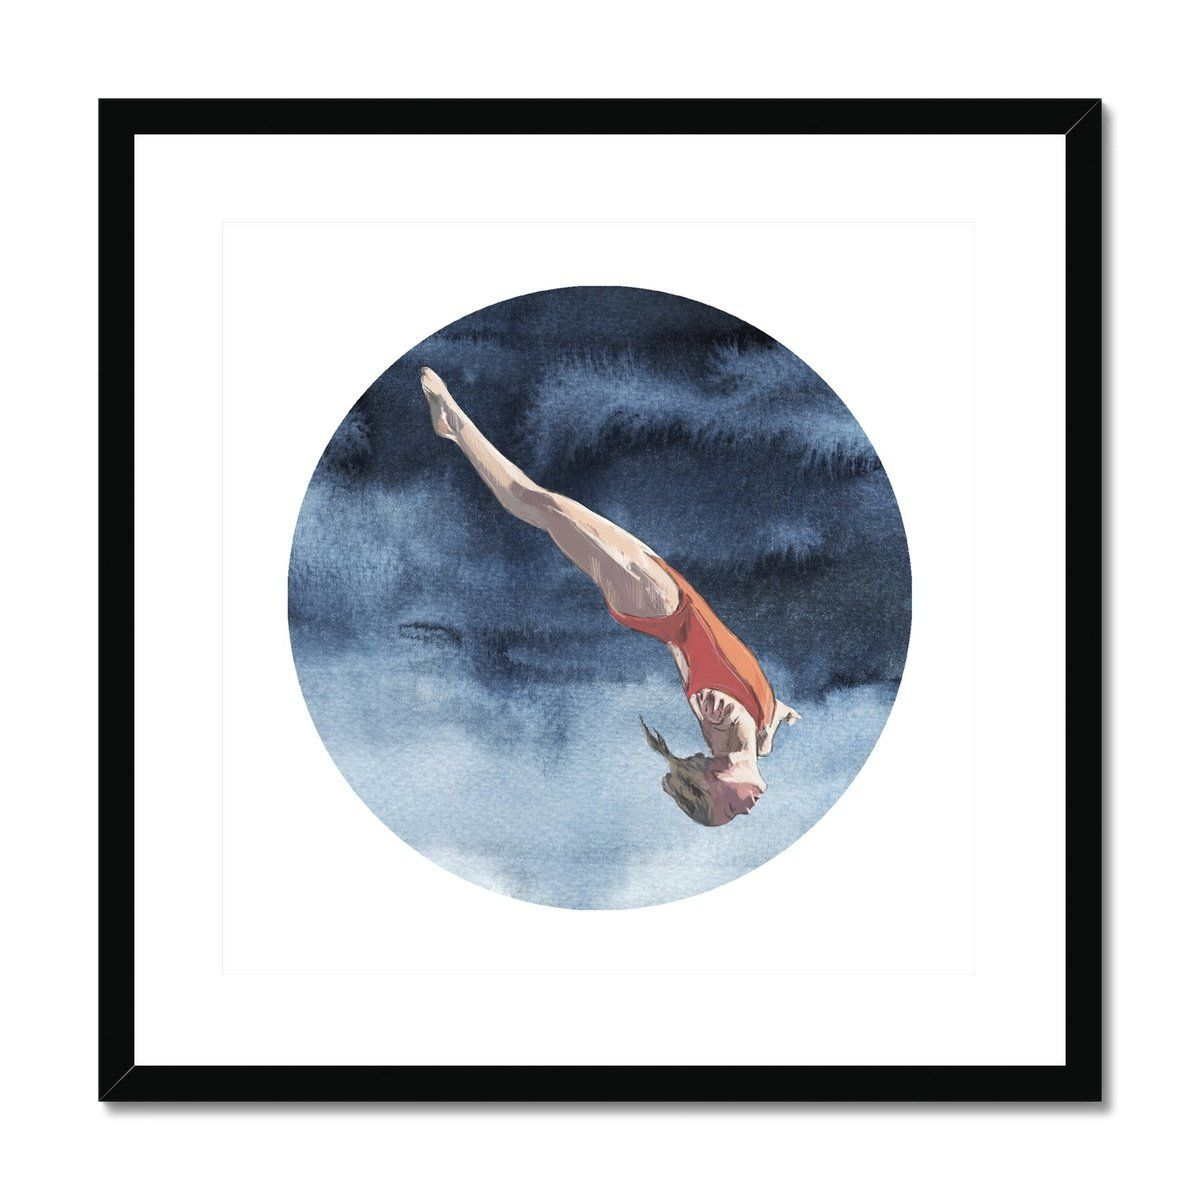 DIVE GIRL 'SOAR', CIRCLE ON SQUARE, Framed & Mounted Print